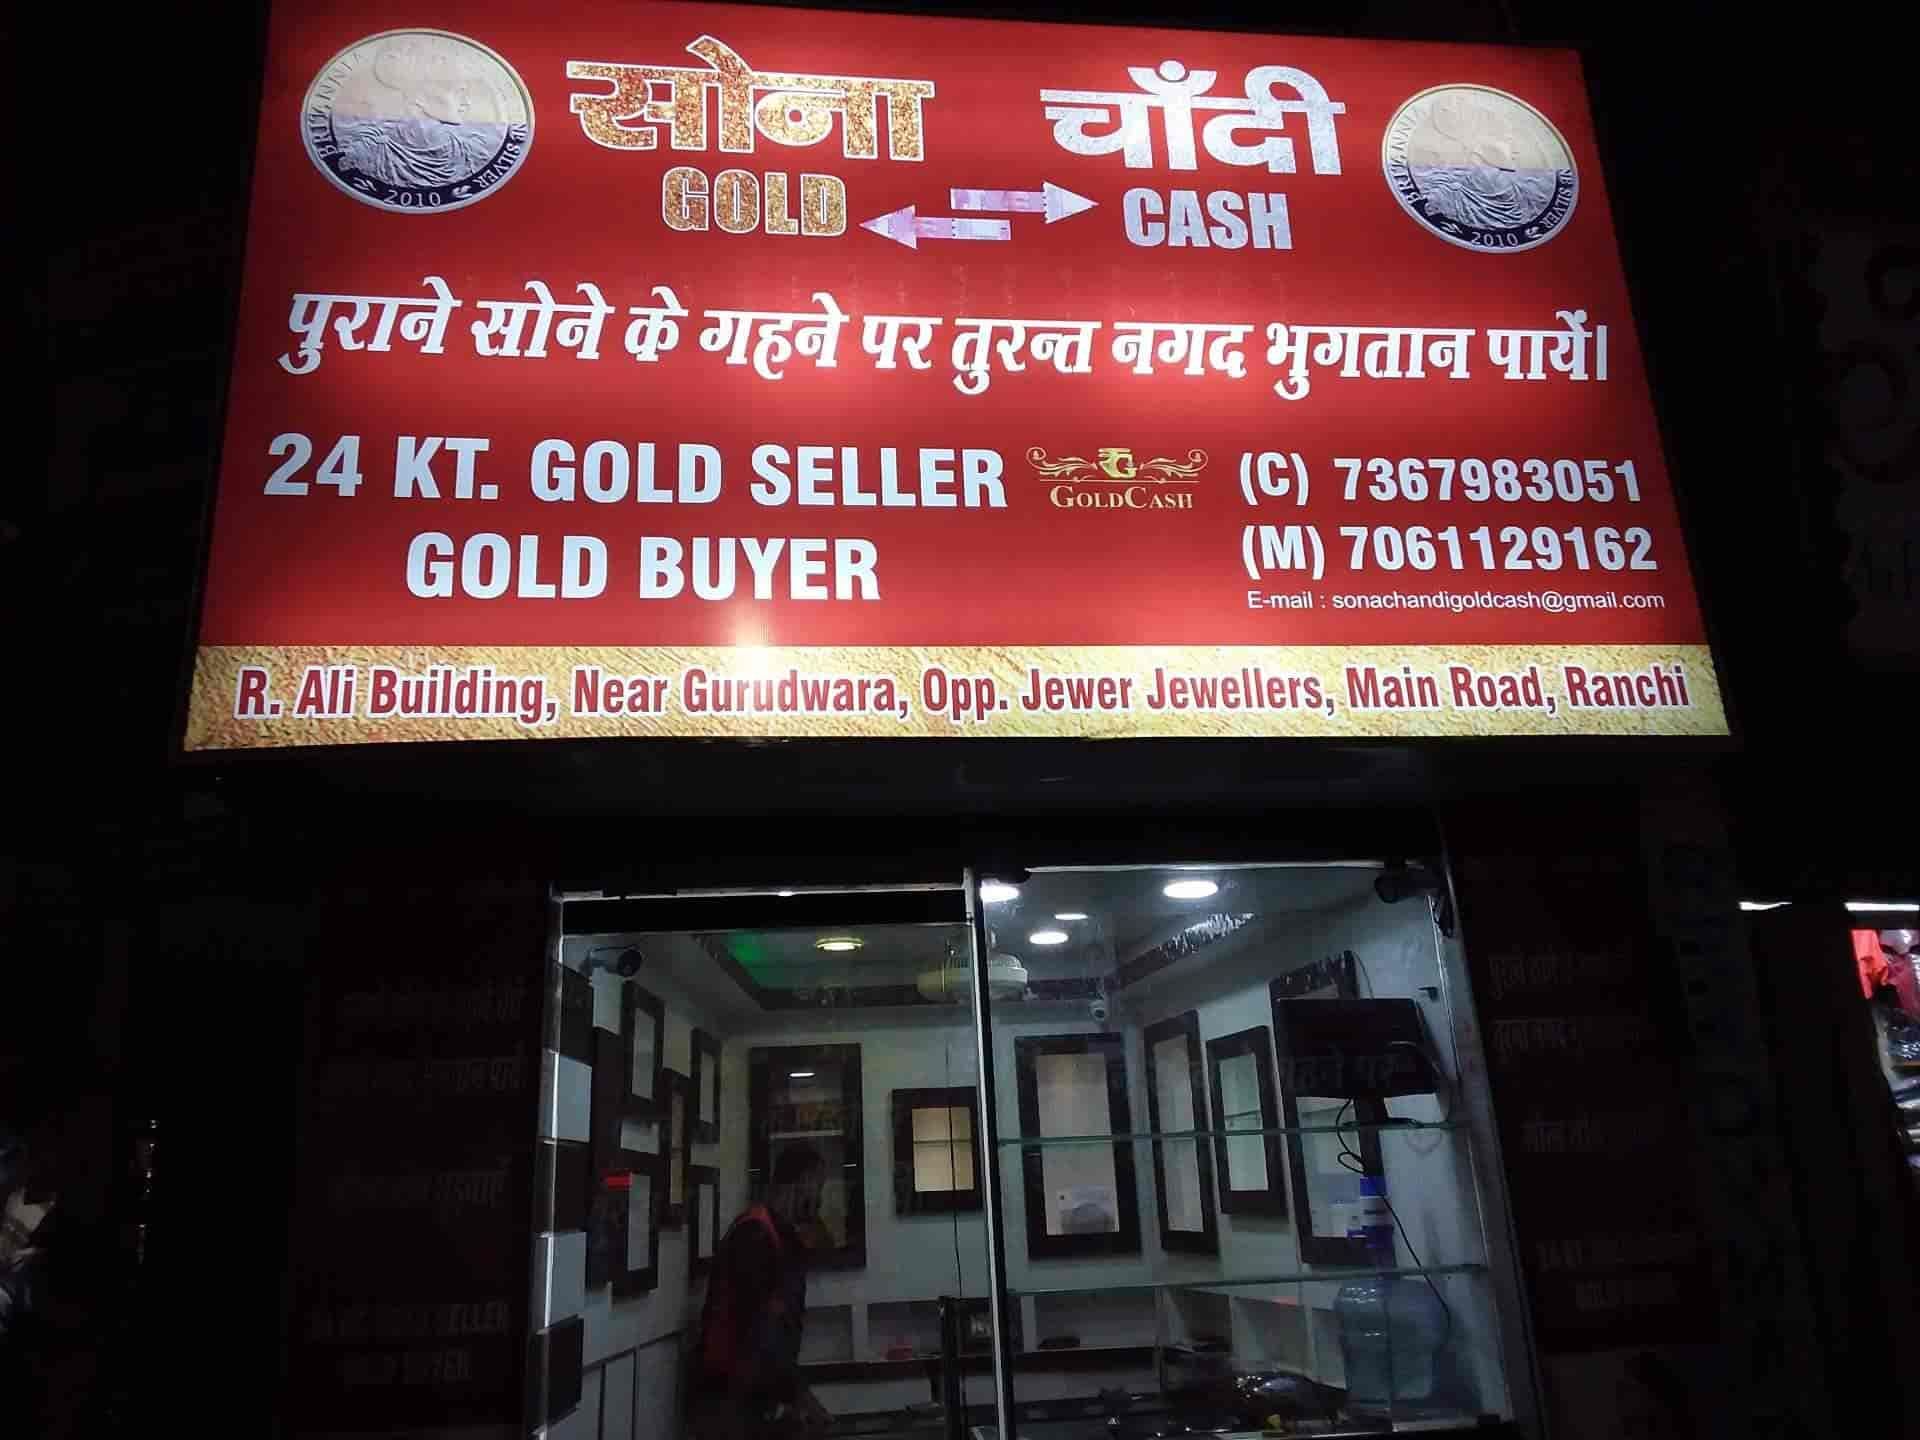 Top Gold Jewellery Showrooms in New Hb Road - Best Gold